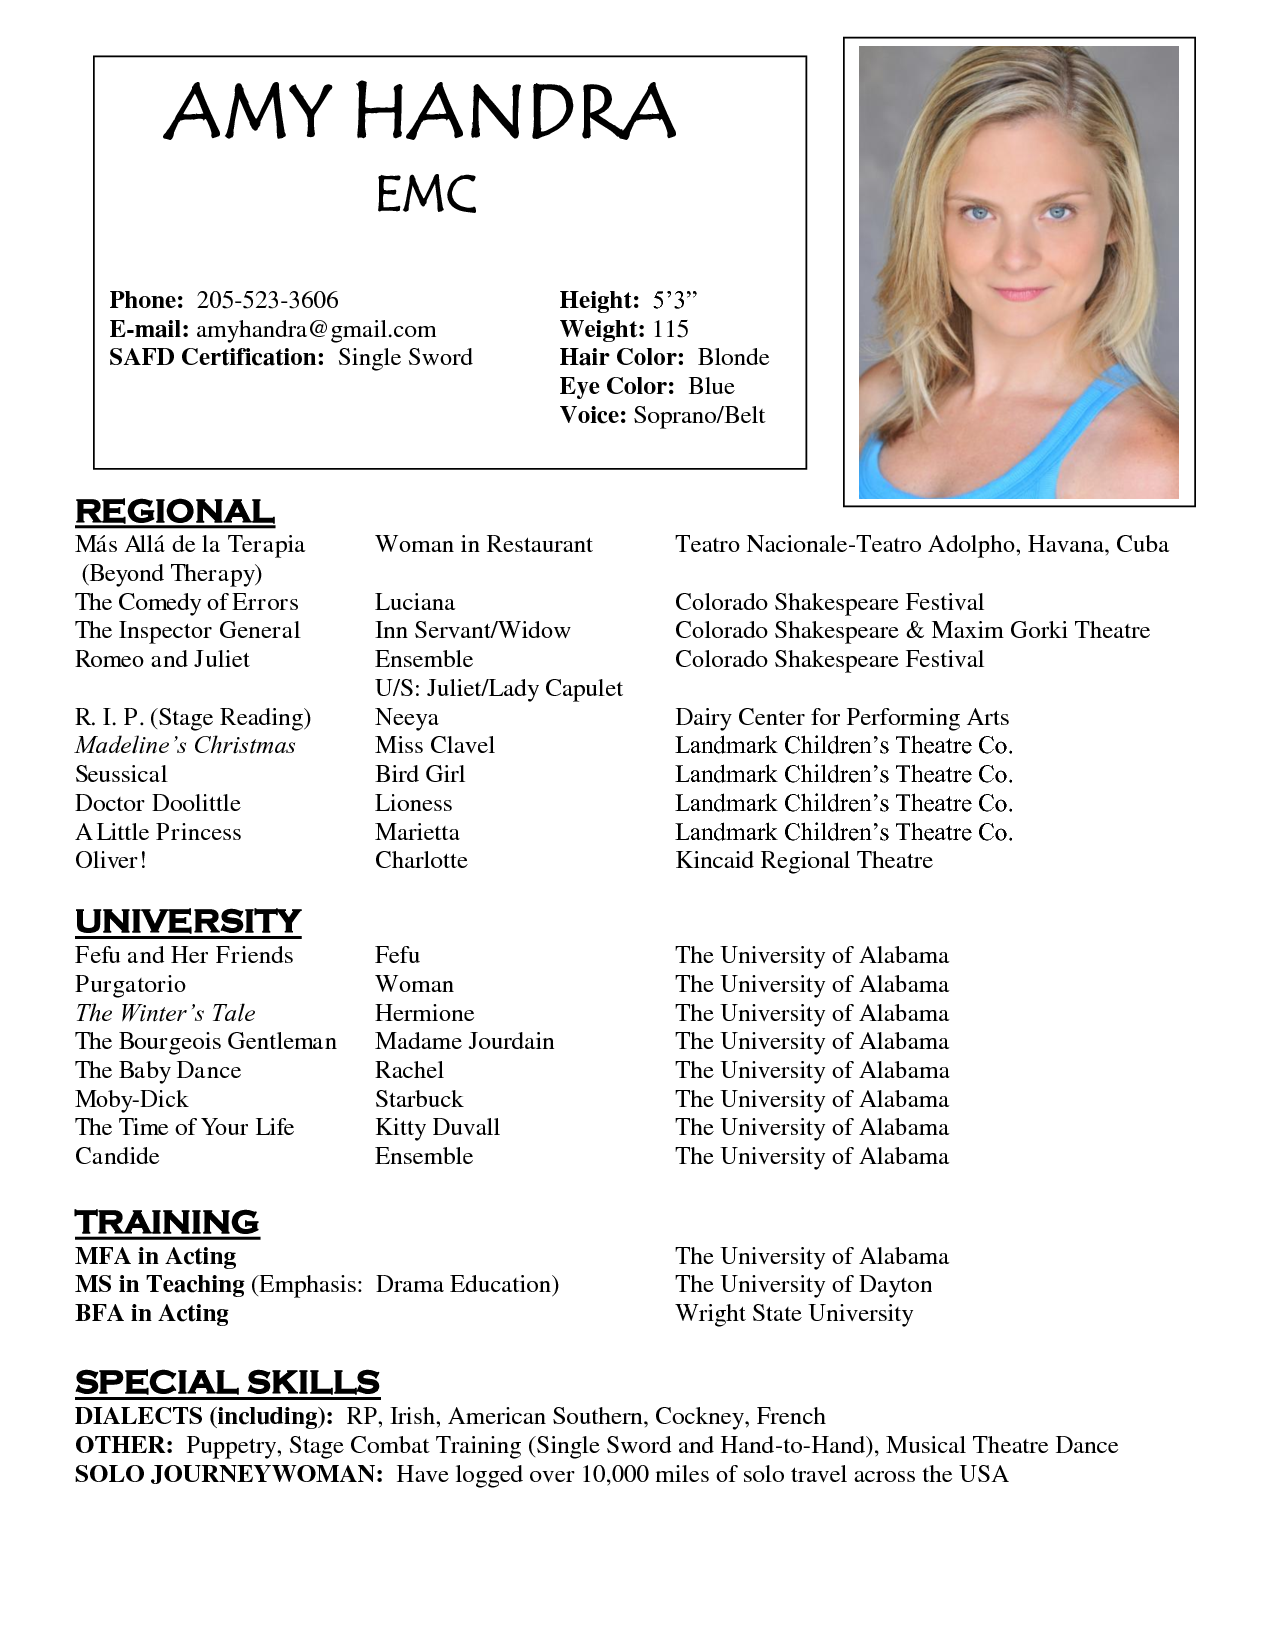 Sample Of Acting Resume Template resumecareerinfo – Sample Acting Resume